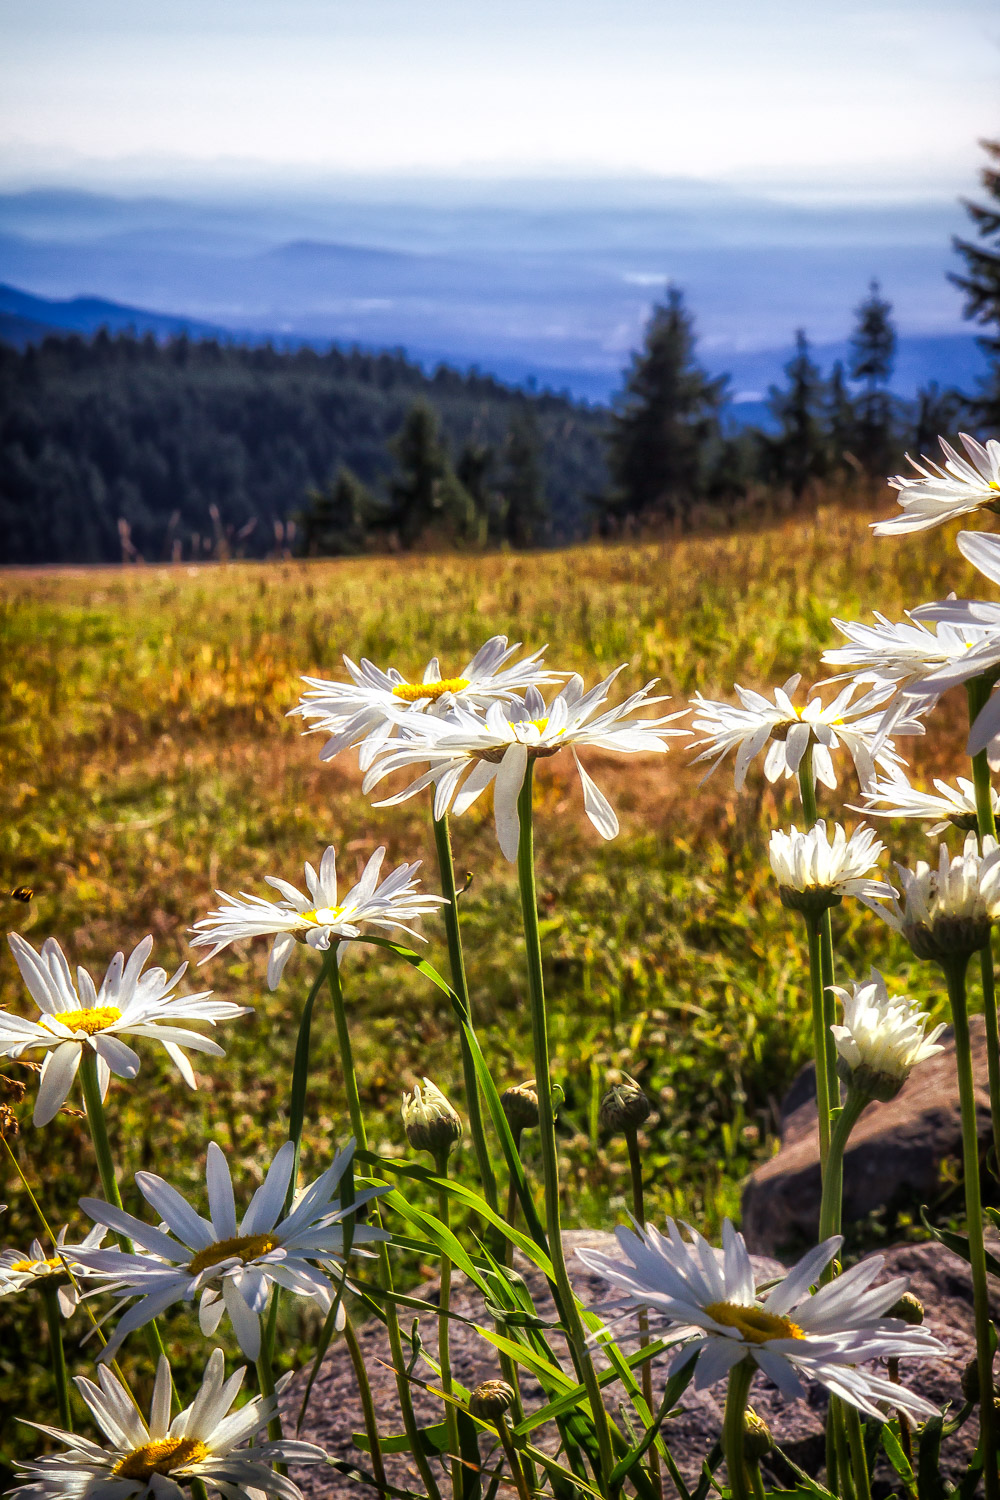 Daisys-NH-Mountains-In-BG-Edit.jpg